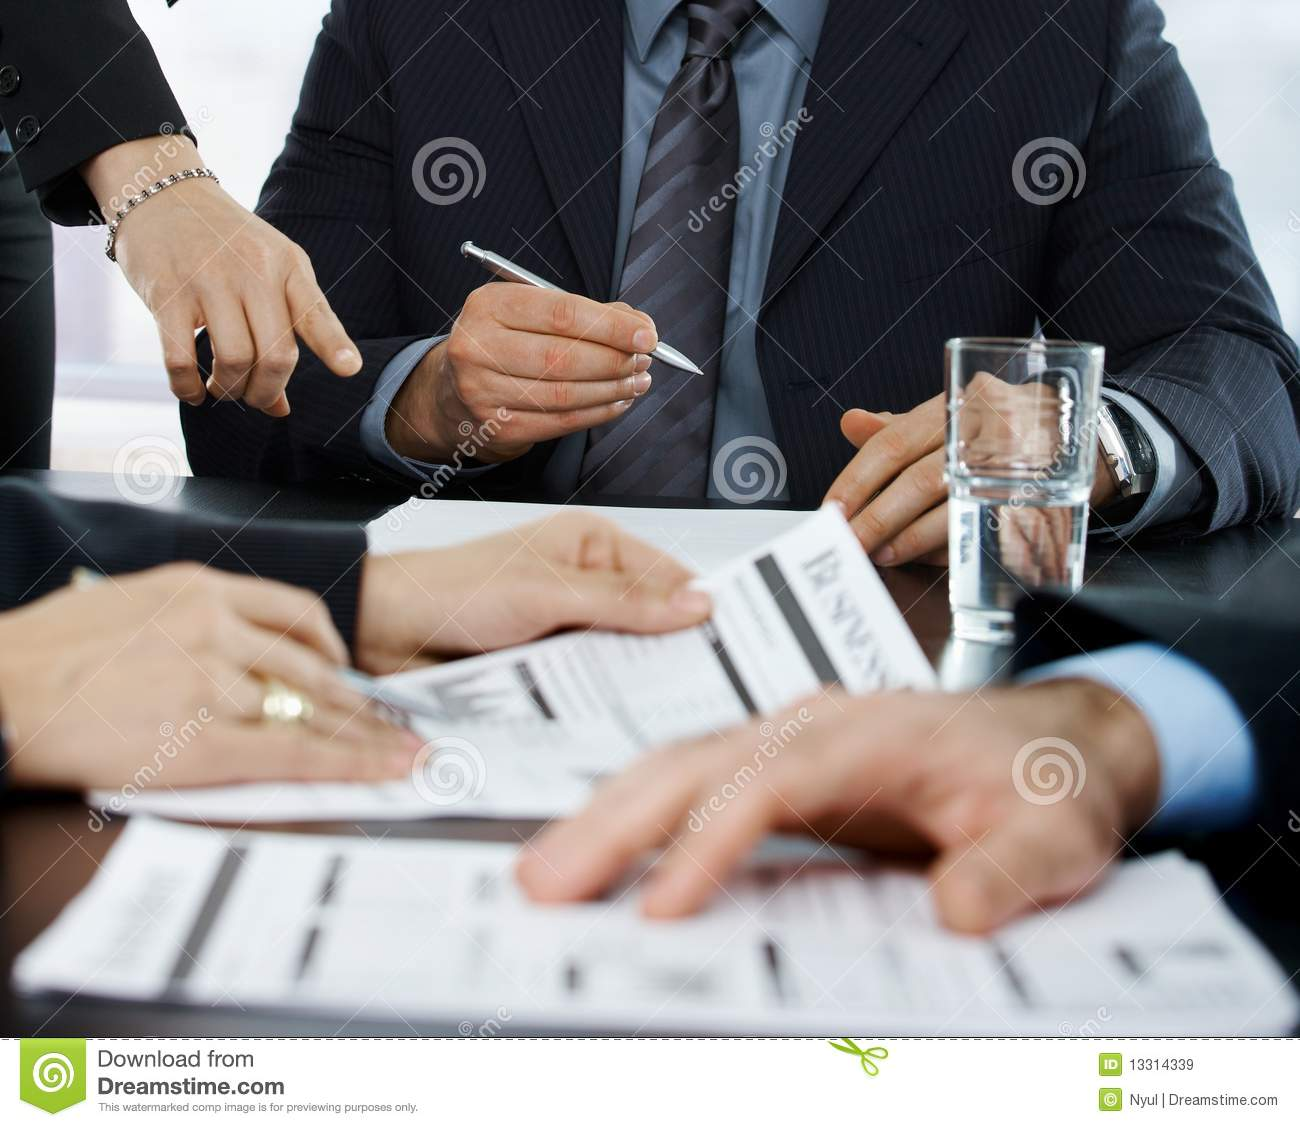 Hands in focus at business meeting